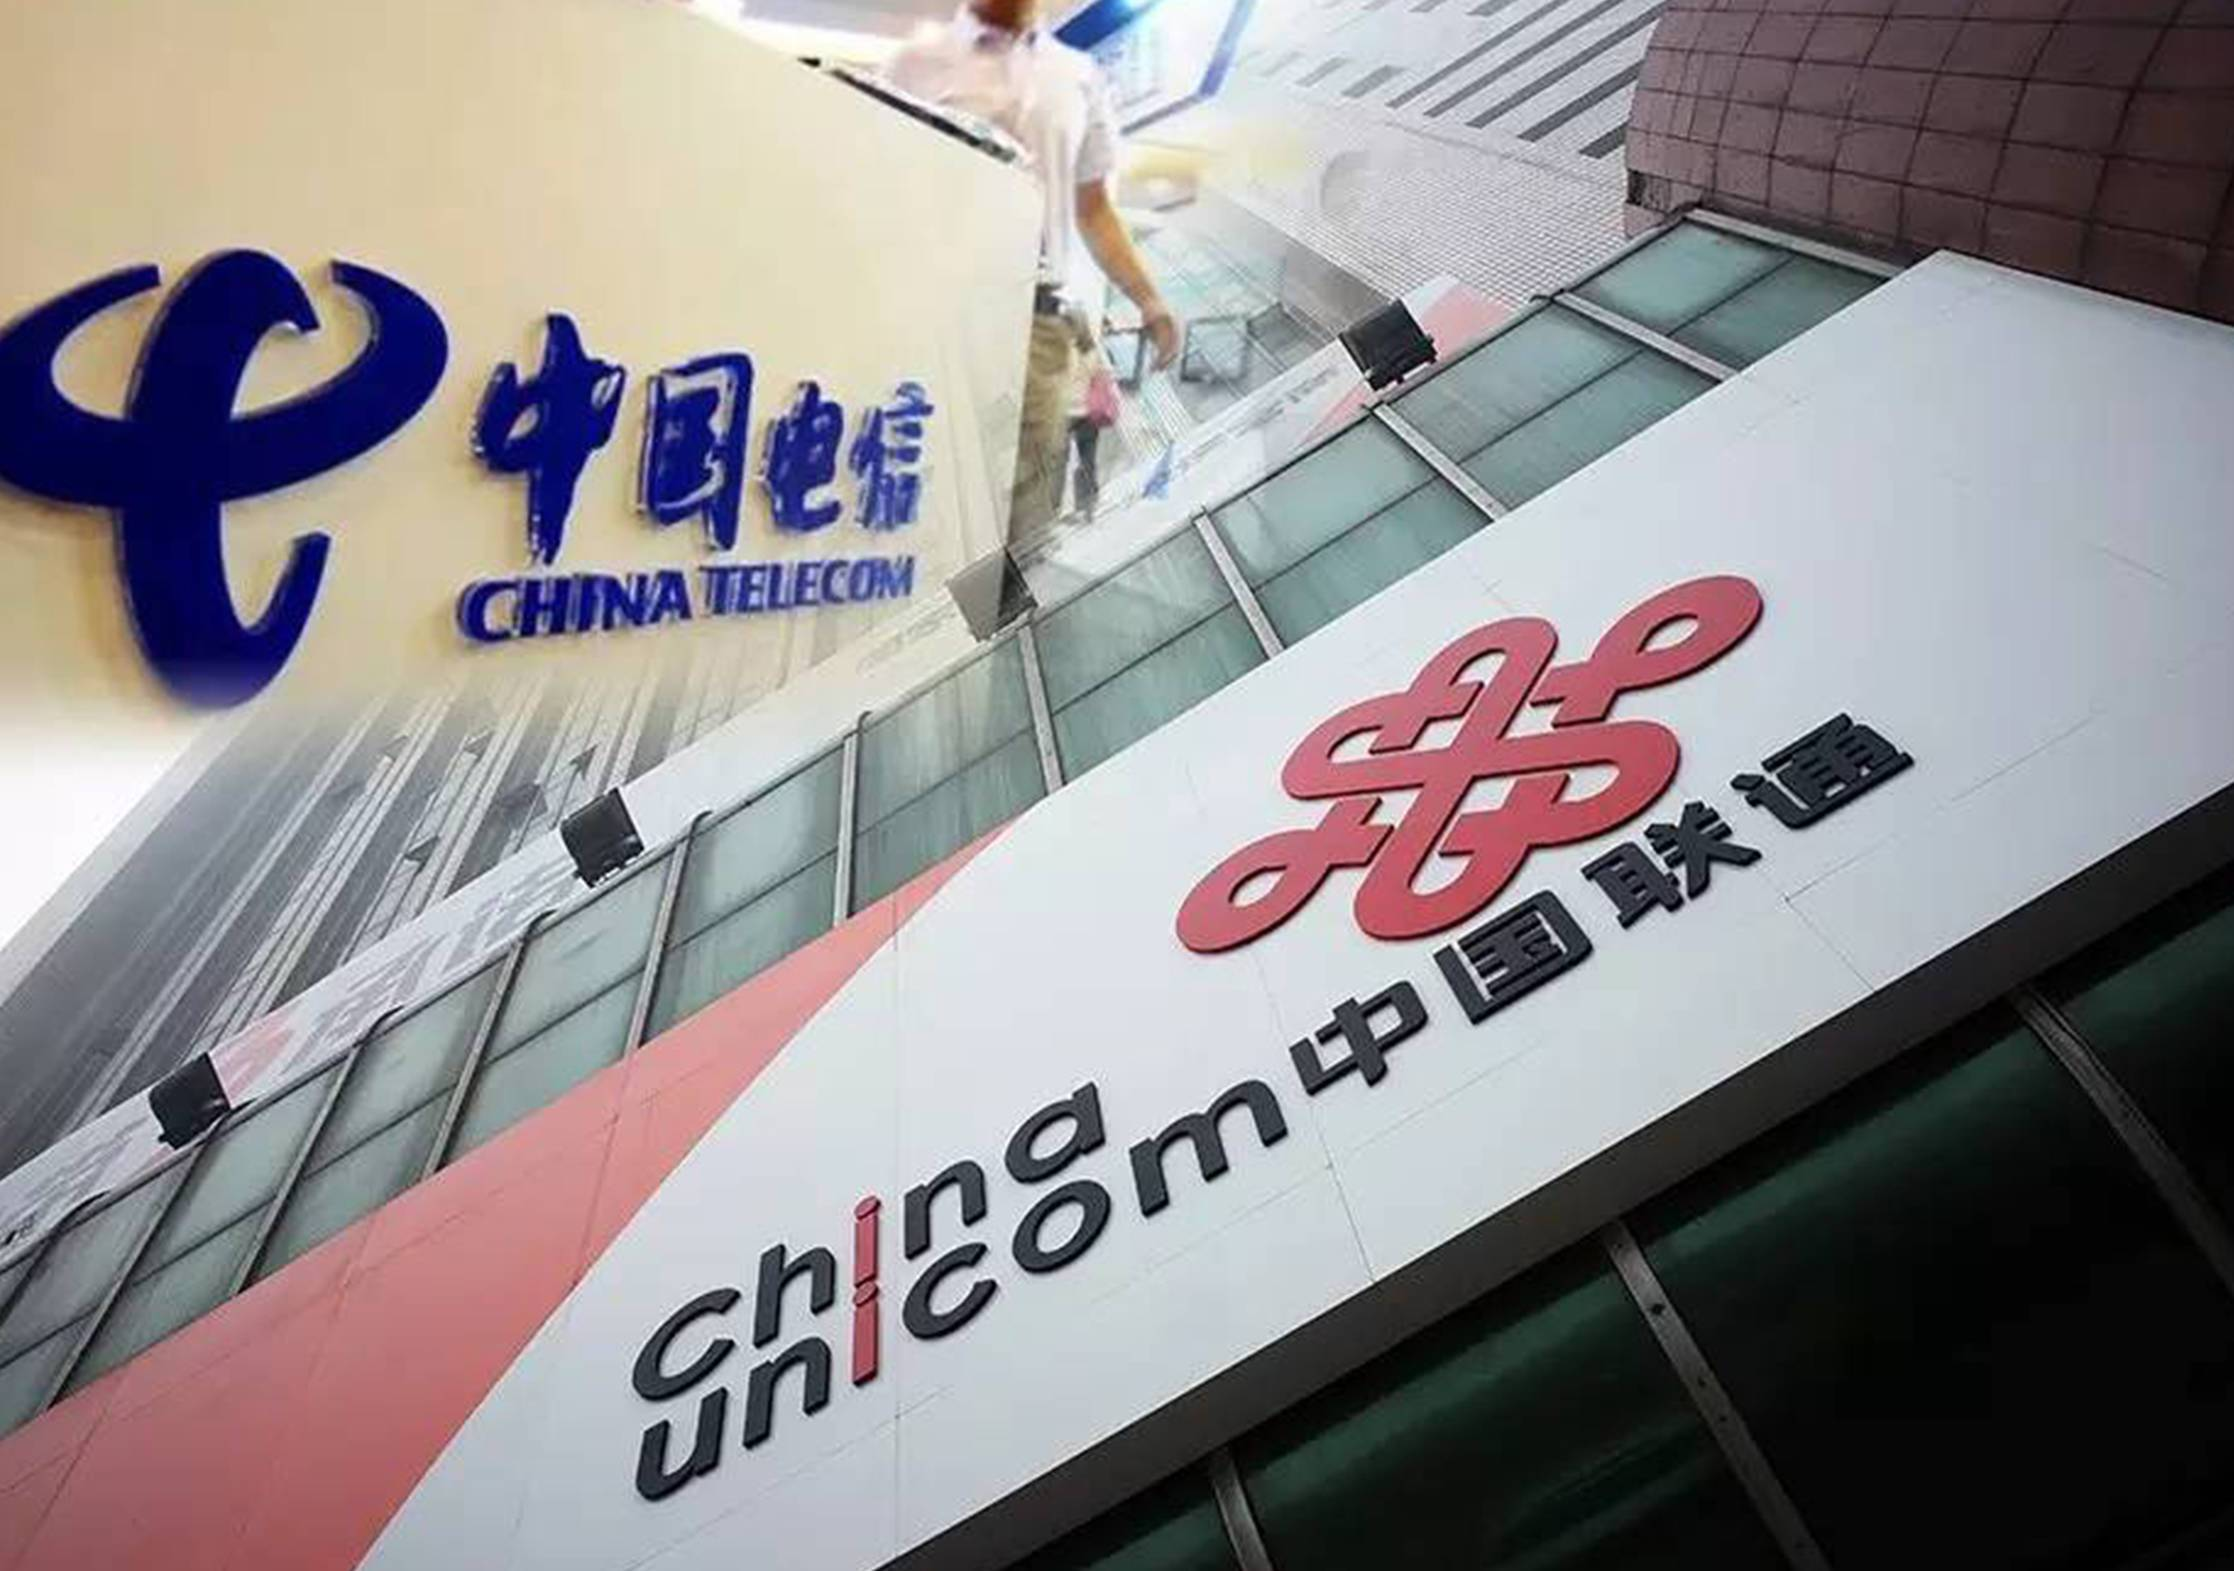 China Financial News, China News, China Telecom, China Unicom